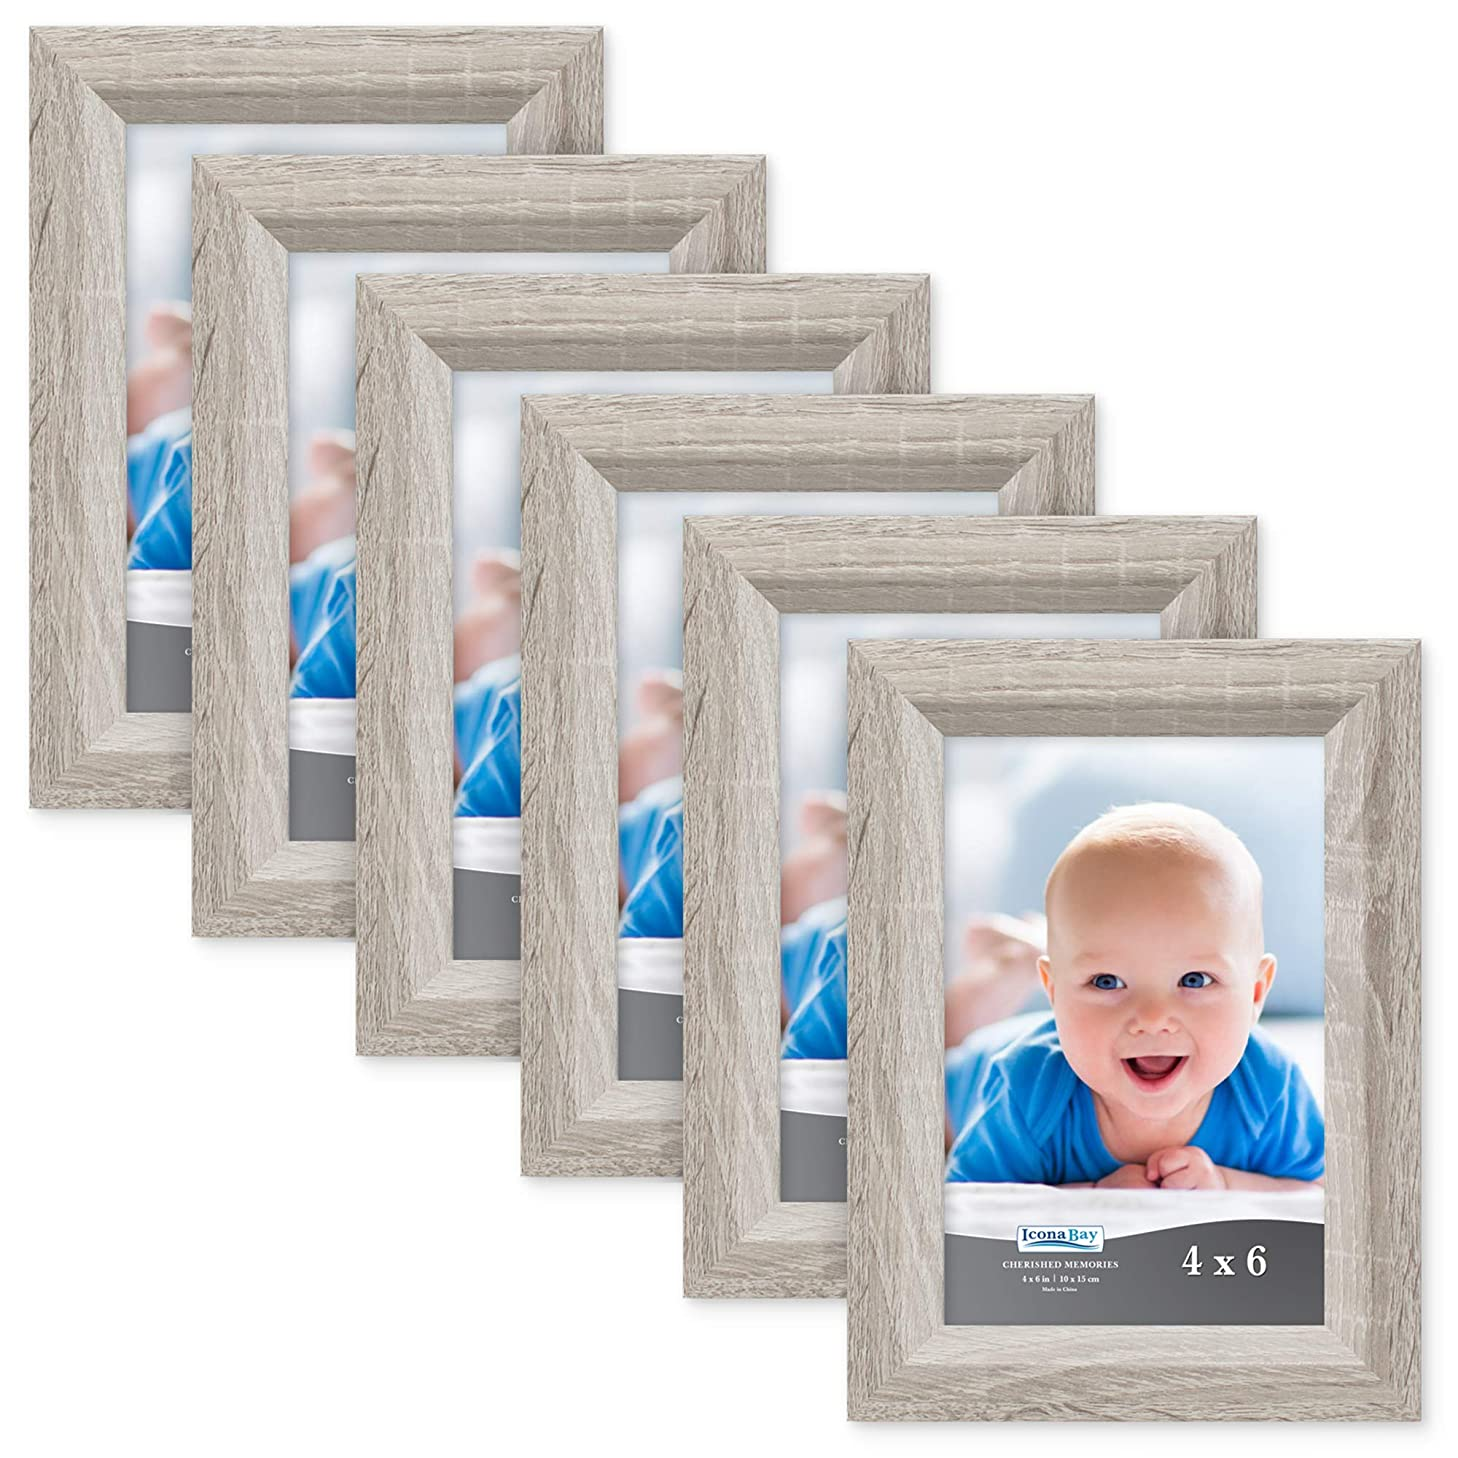 Icona Bay 4x6 Picture Frame (6 Pack, Heritage Gray Wood Finish), Gray Photo Frame 4 x 6, Composite Wood Frame for Walls or Tables, Set of 6 Cherished Memories Collection